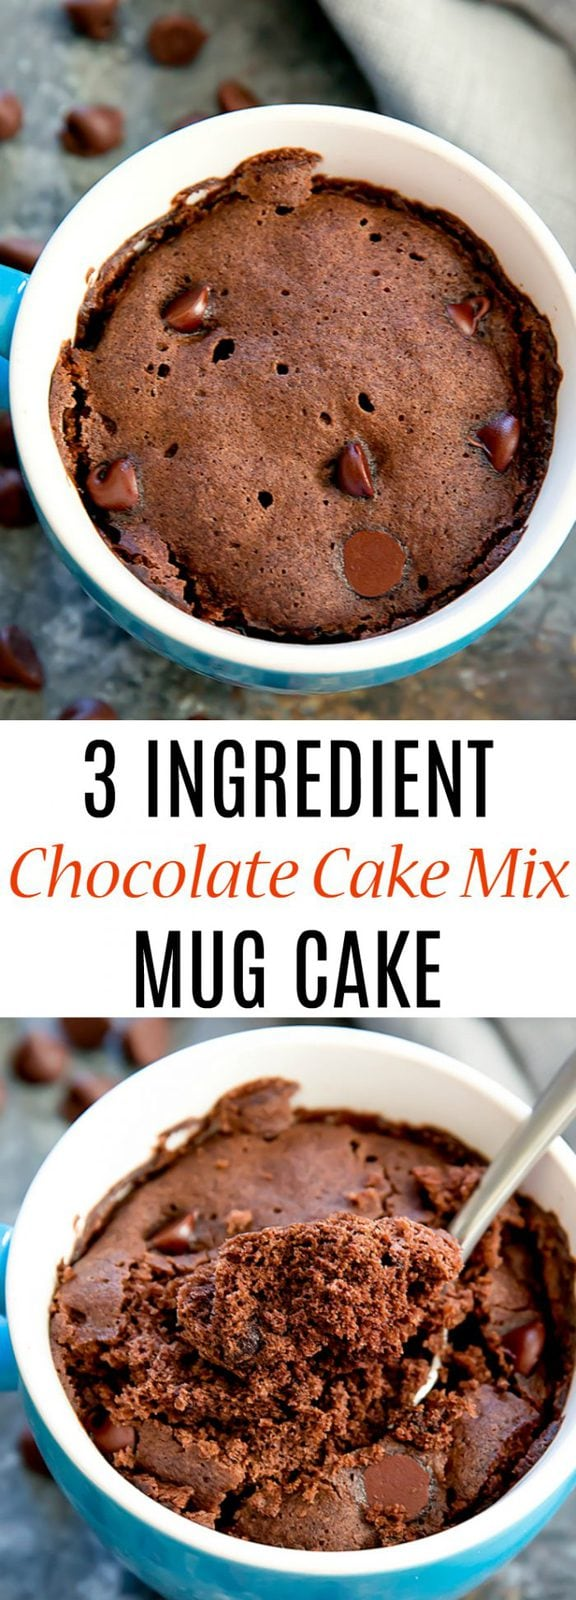 Eggless Brownies From Cake Mix